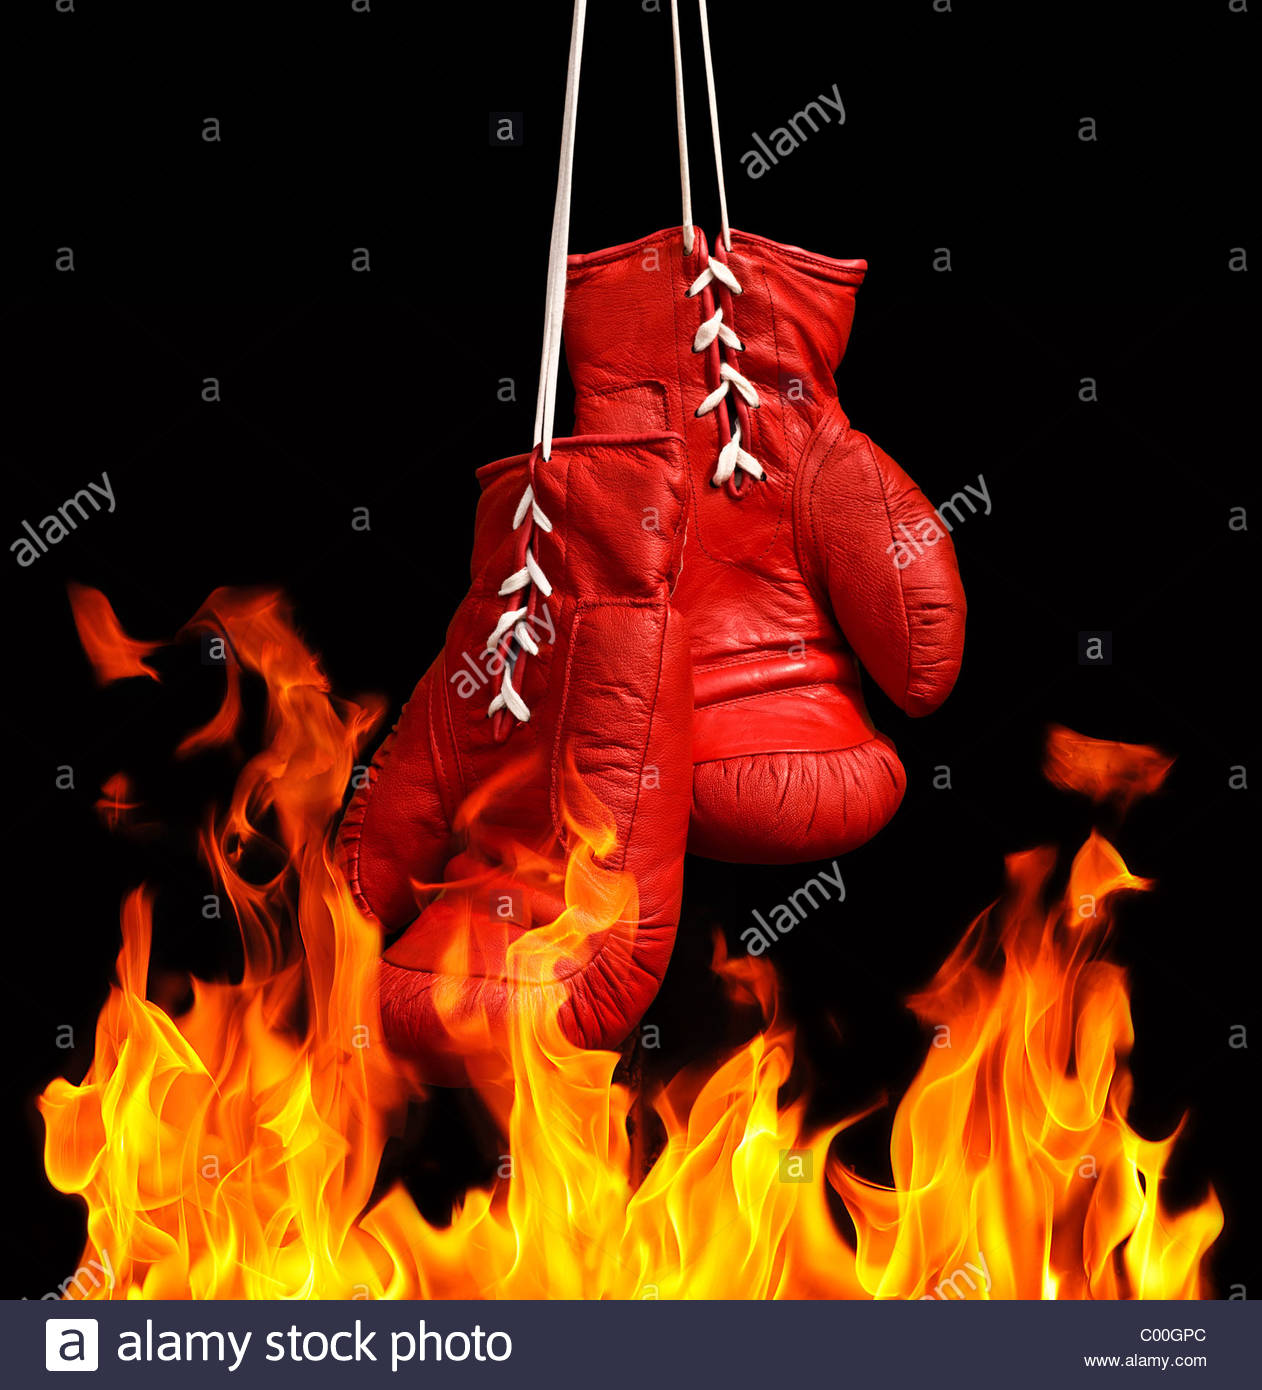 fire fighter training stock photos fire fighter training stock boxing gloves and fire stock image